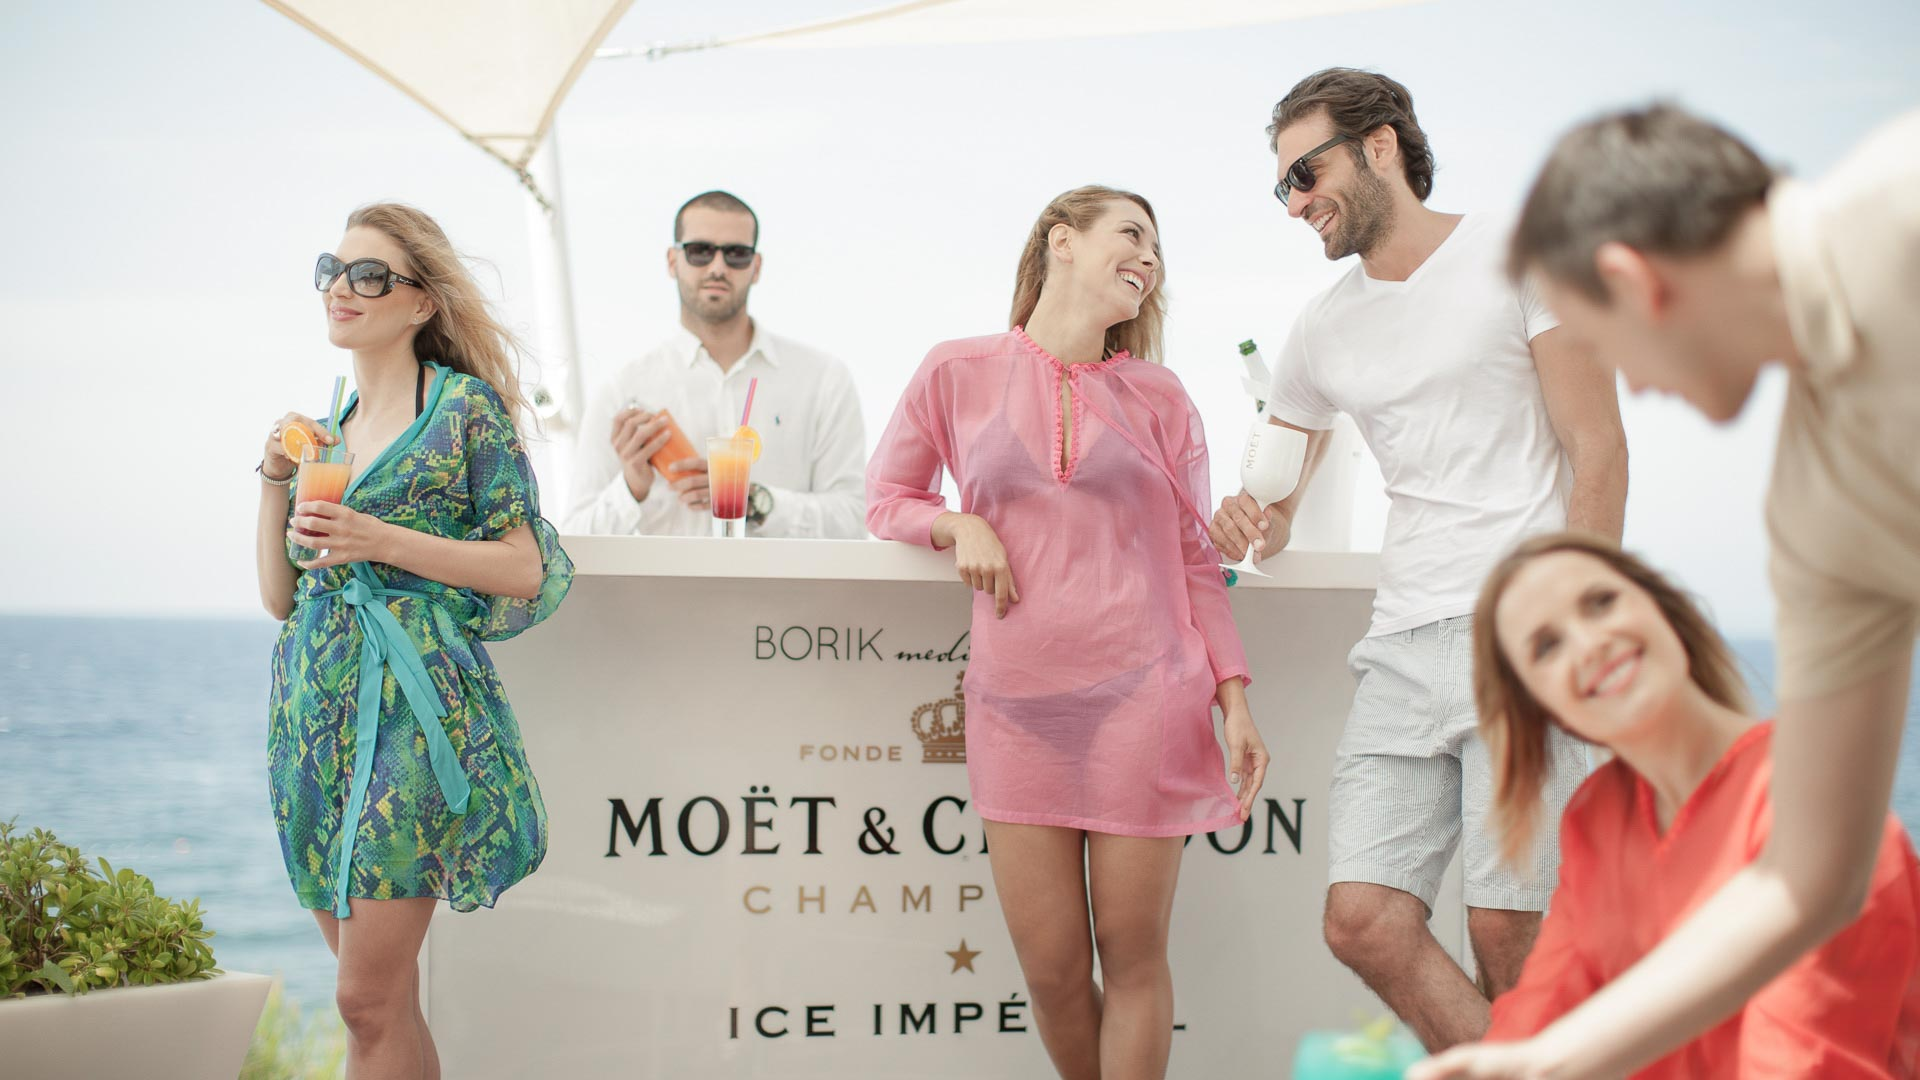 Moet, beach party, fun, sea, people, champagne